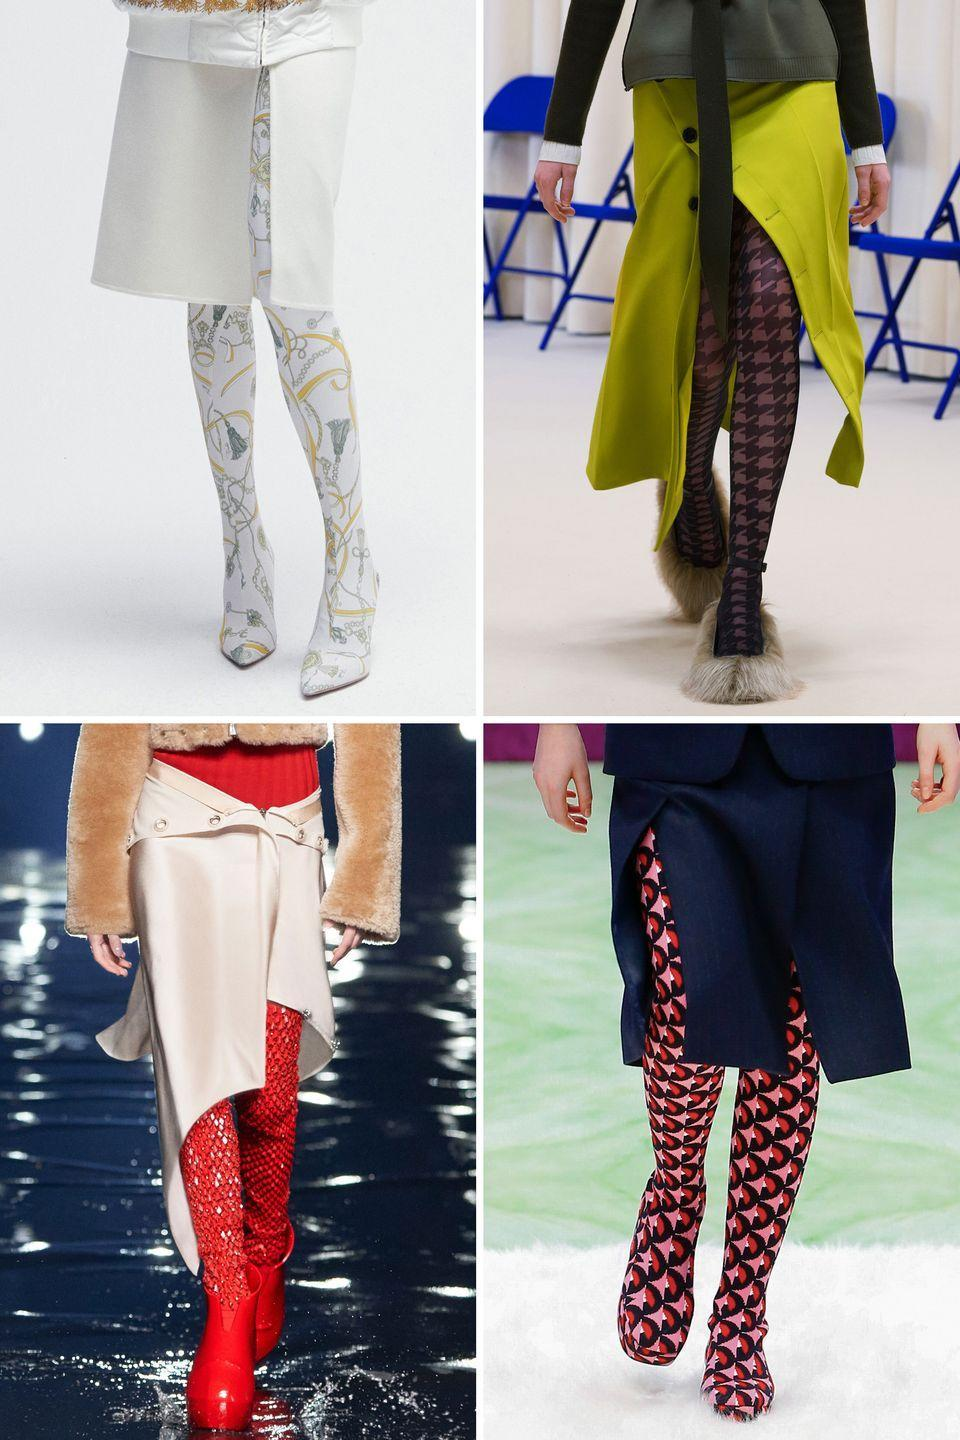 <p>Add drama to a slit skirt with a patterned tight or legging.</p><p><strong>Insider tip: </strong>Keep everything else simple and streamlined.</p><p><em>Pictured: Pucci, Nina Ricci, Givenchy, Prada</em></p>